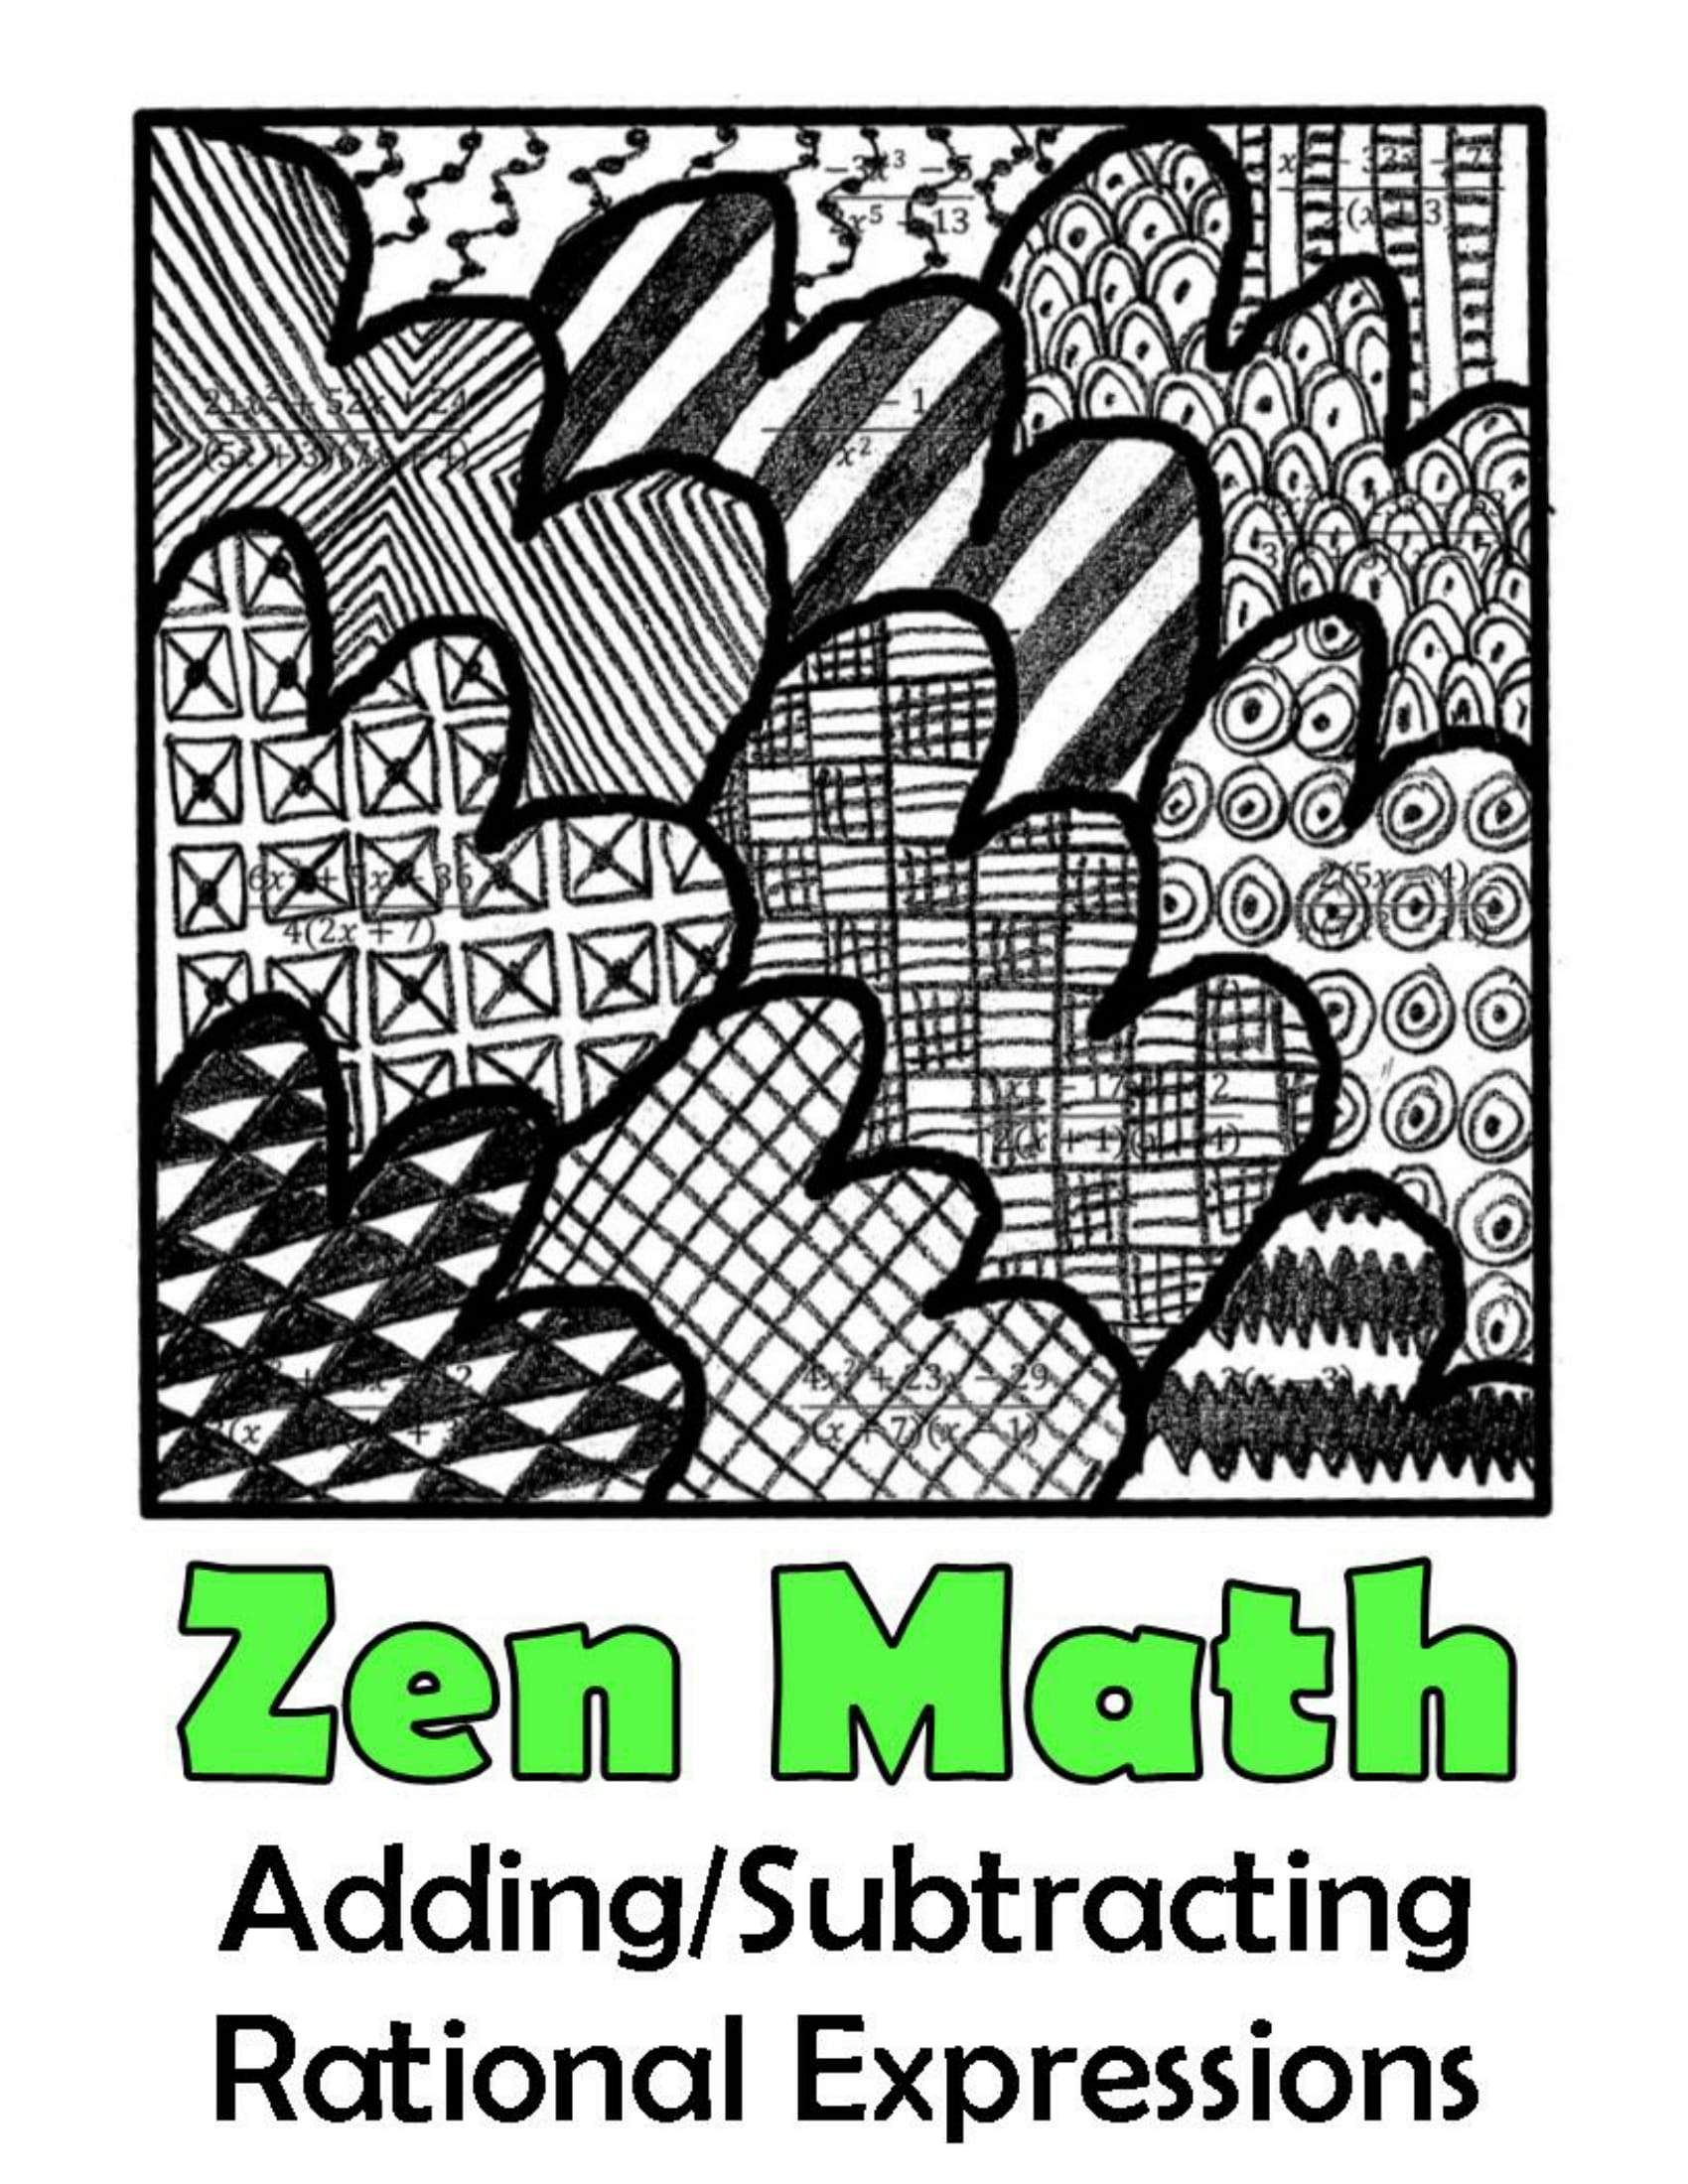 Algebra 2 Color By Number Mega Bundle 30 Activities For Skills Practice Rational Expressions Adding And Subtracting Subtraction Adding rational expressions with like